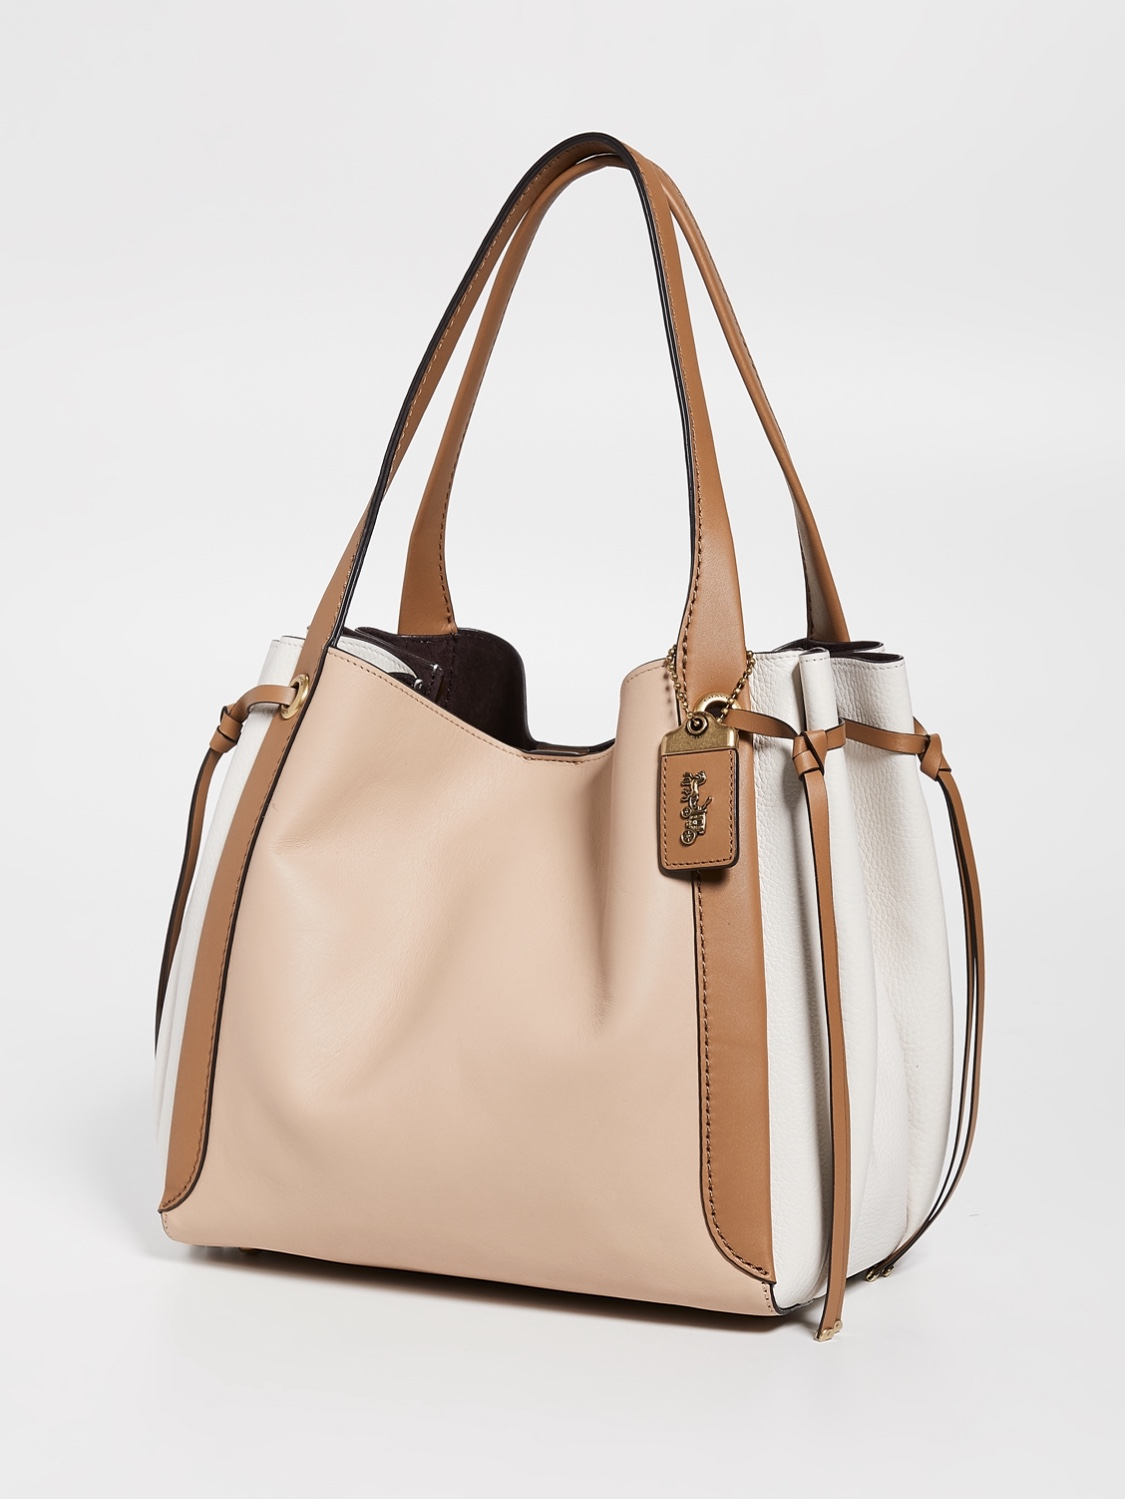 Coach Harmony Colorblock Hobo Bag $695